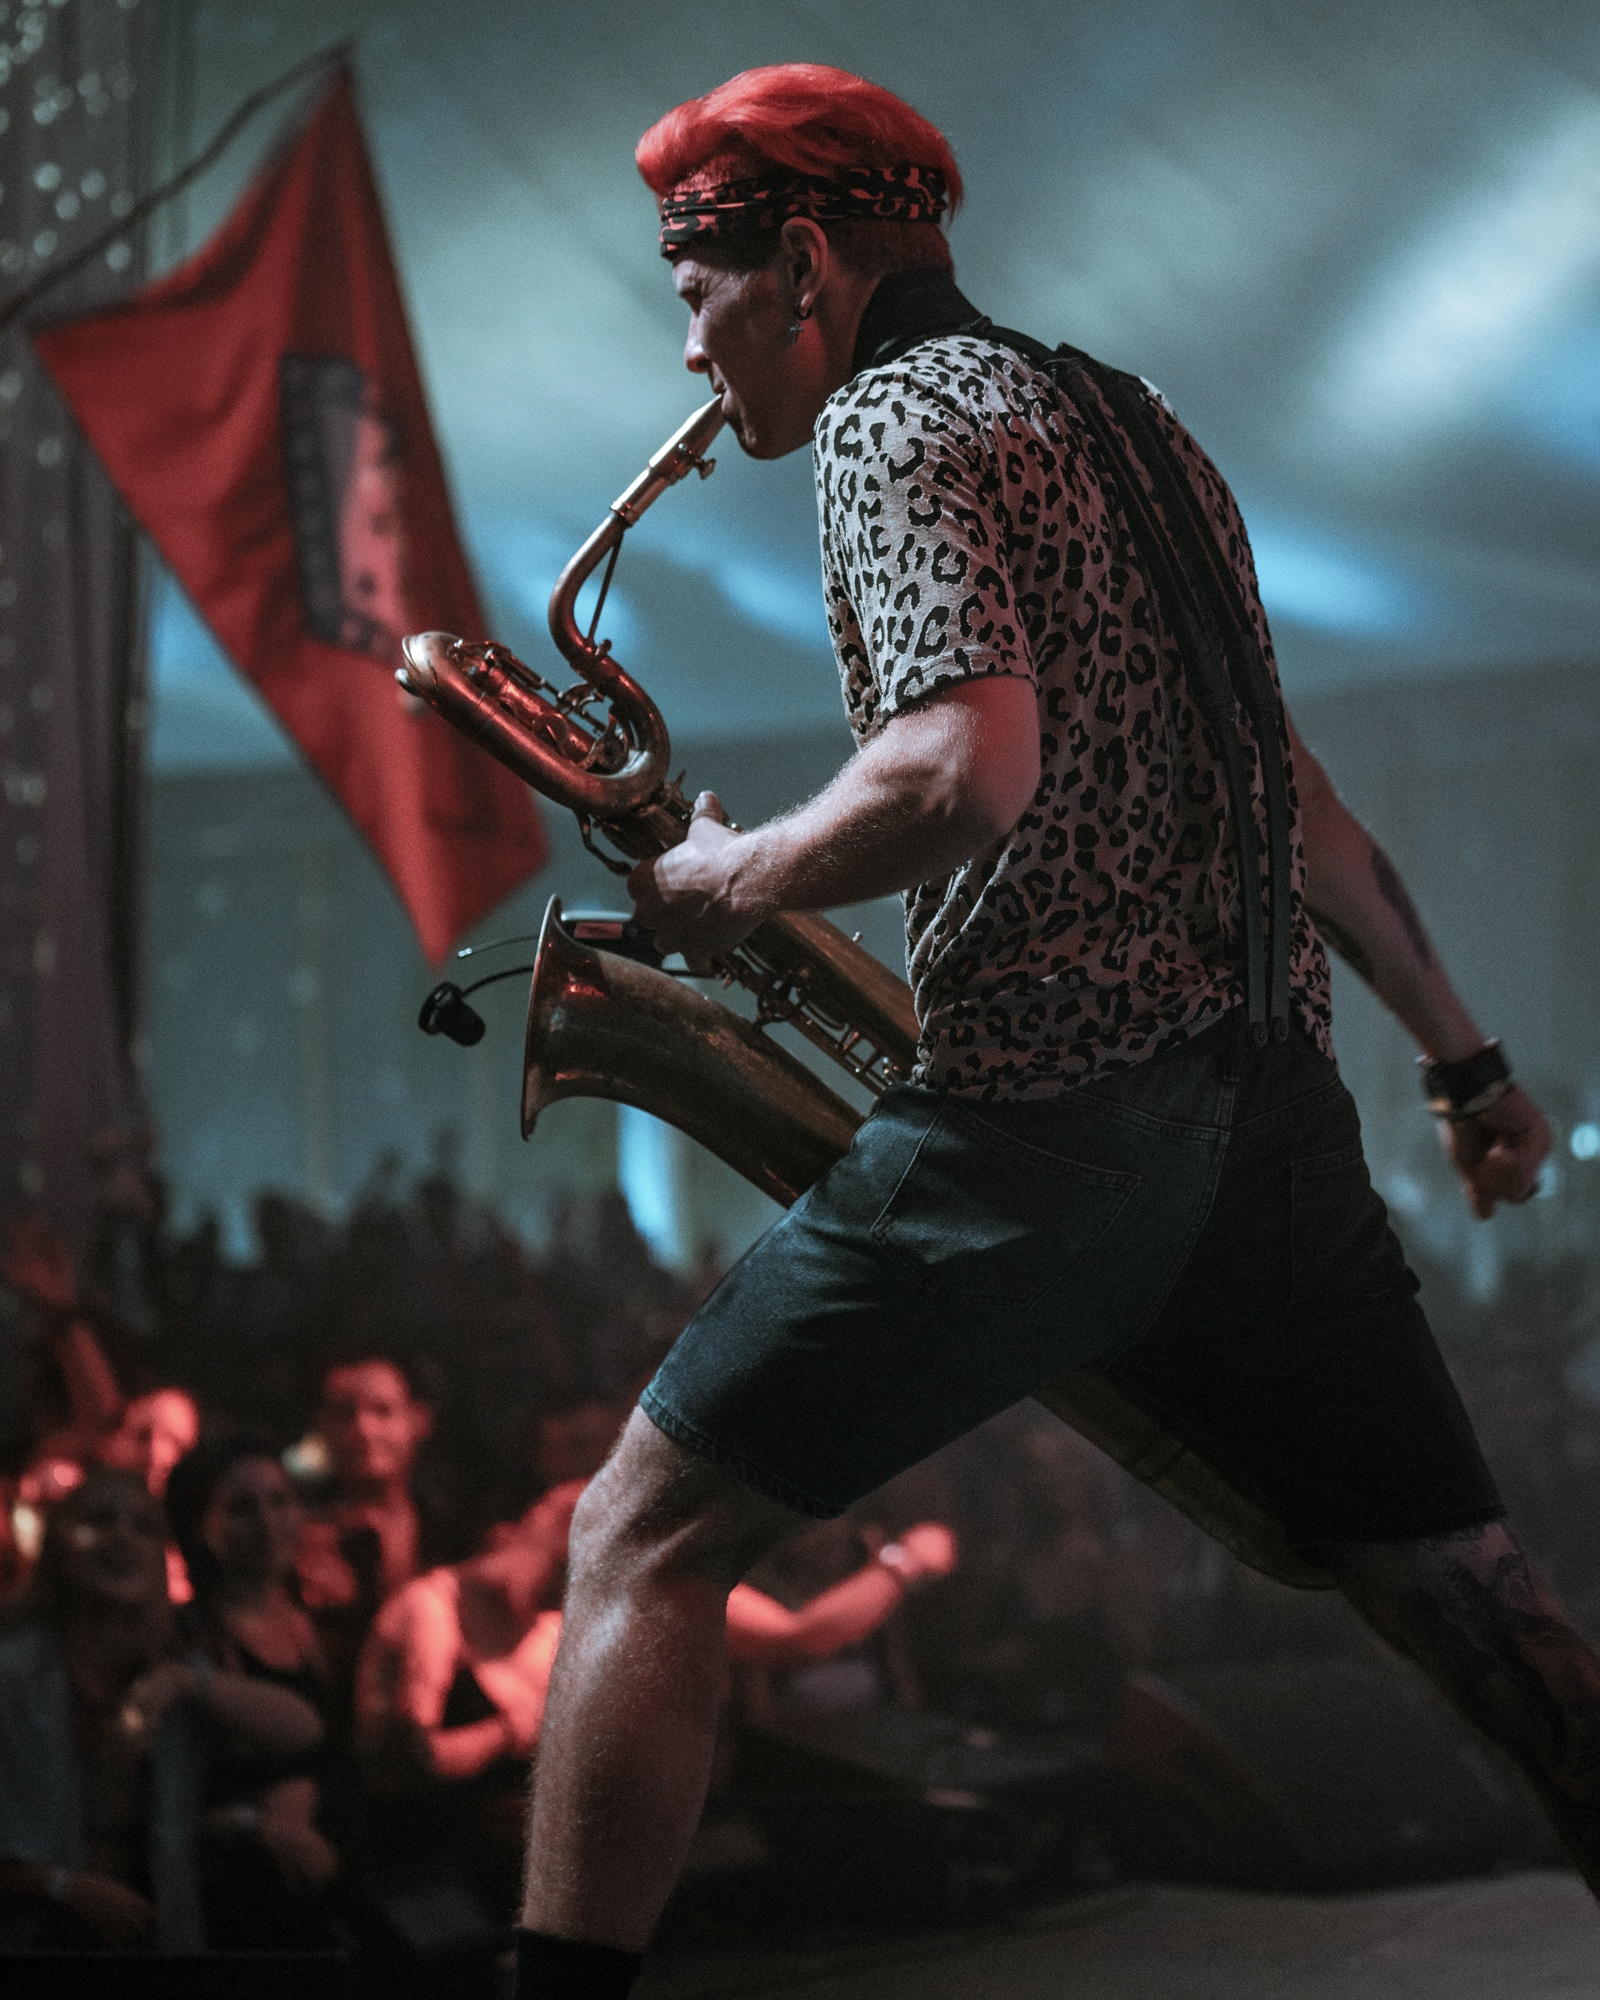 Too Many Zooz - Photo by Chris Taylor